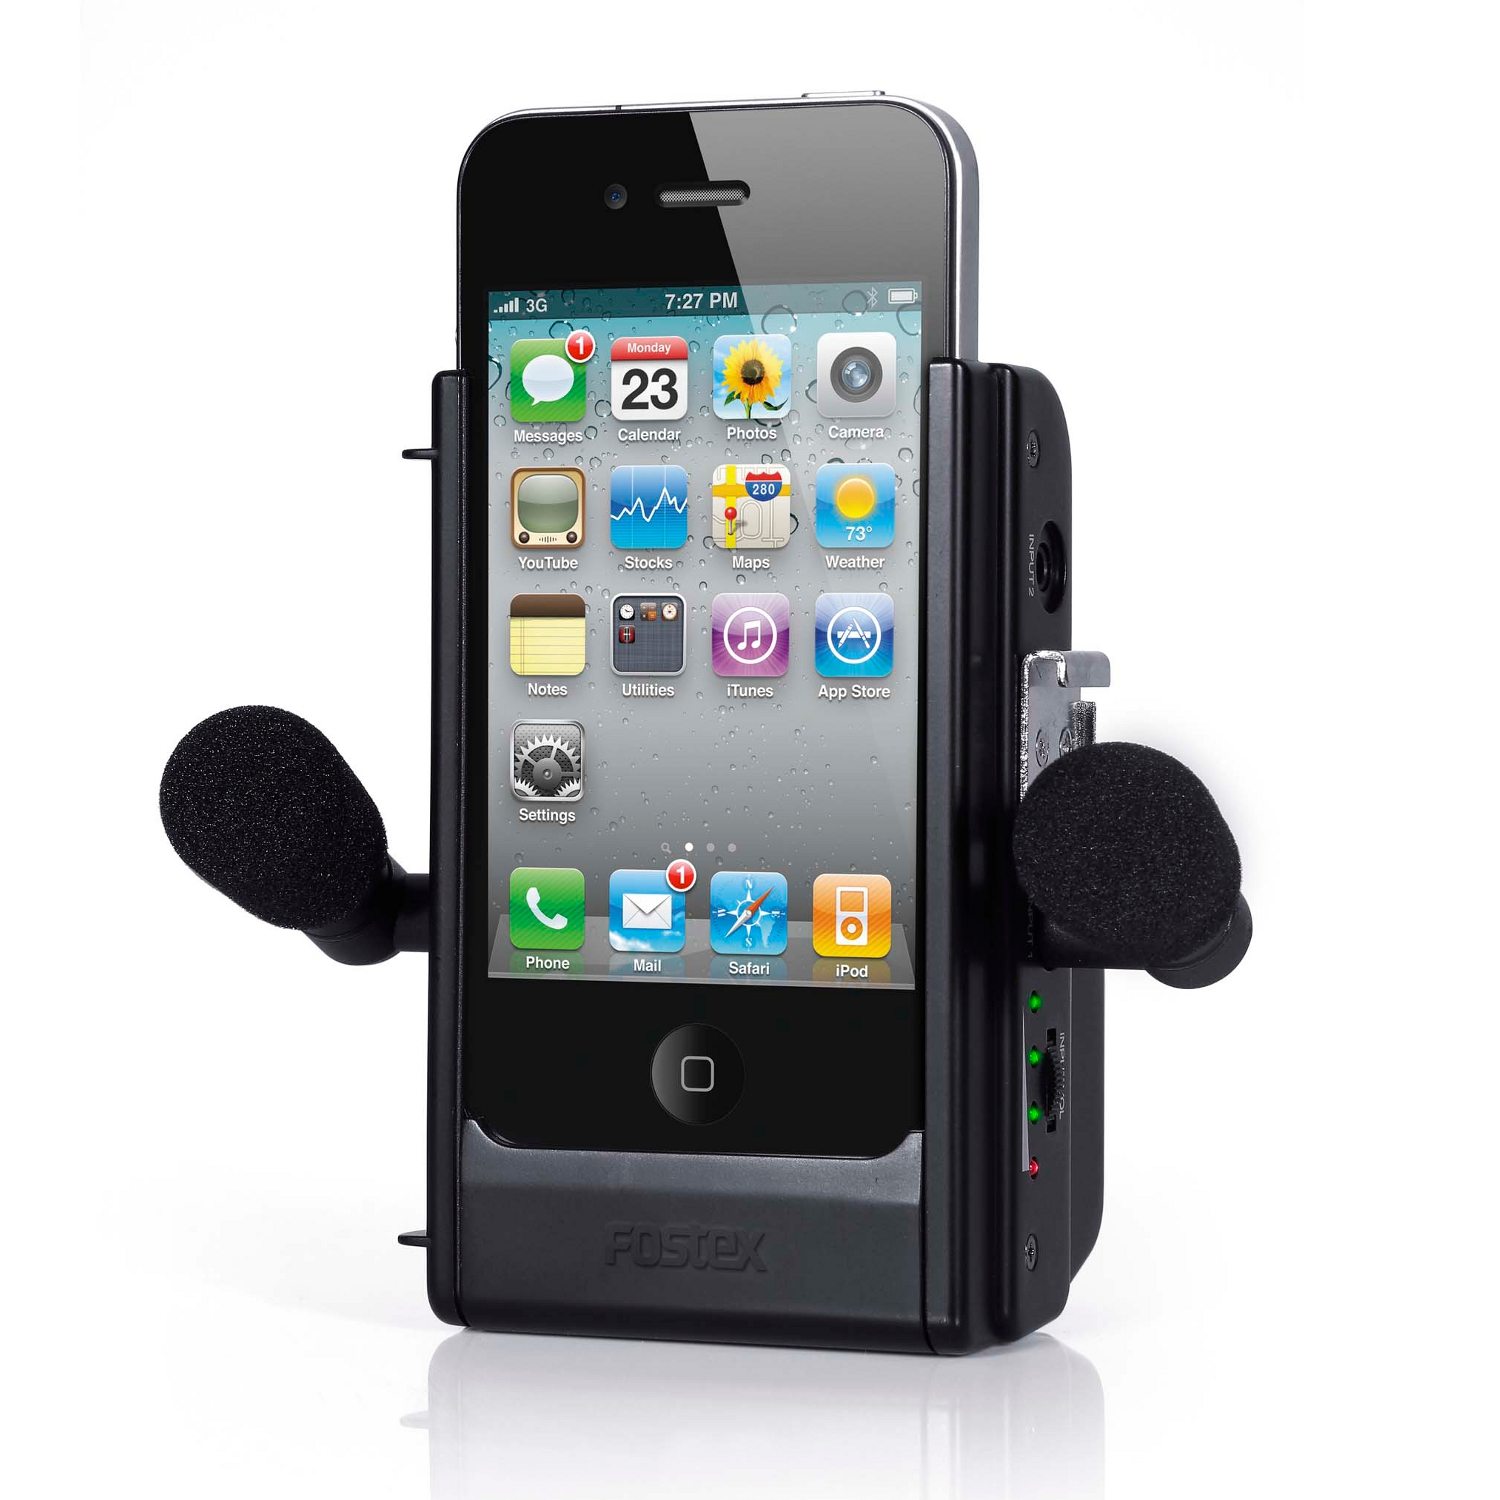 fostex ar 4i iphone 4 dock audio interface kaufen bax shop. Black Bedroom Furniture Sets. Home Design Ideas